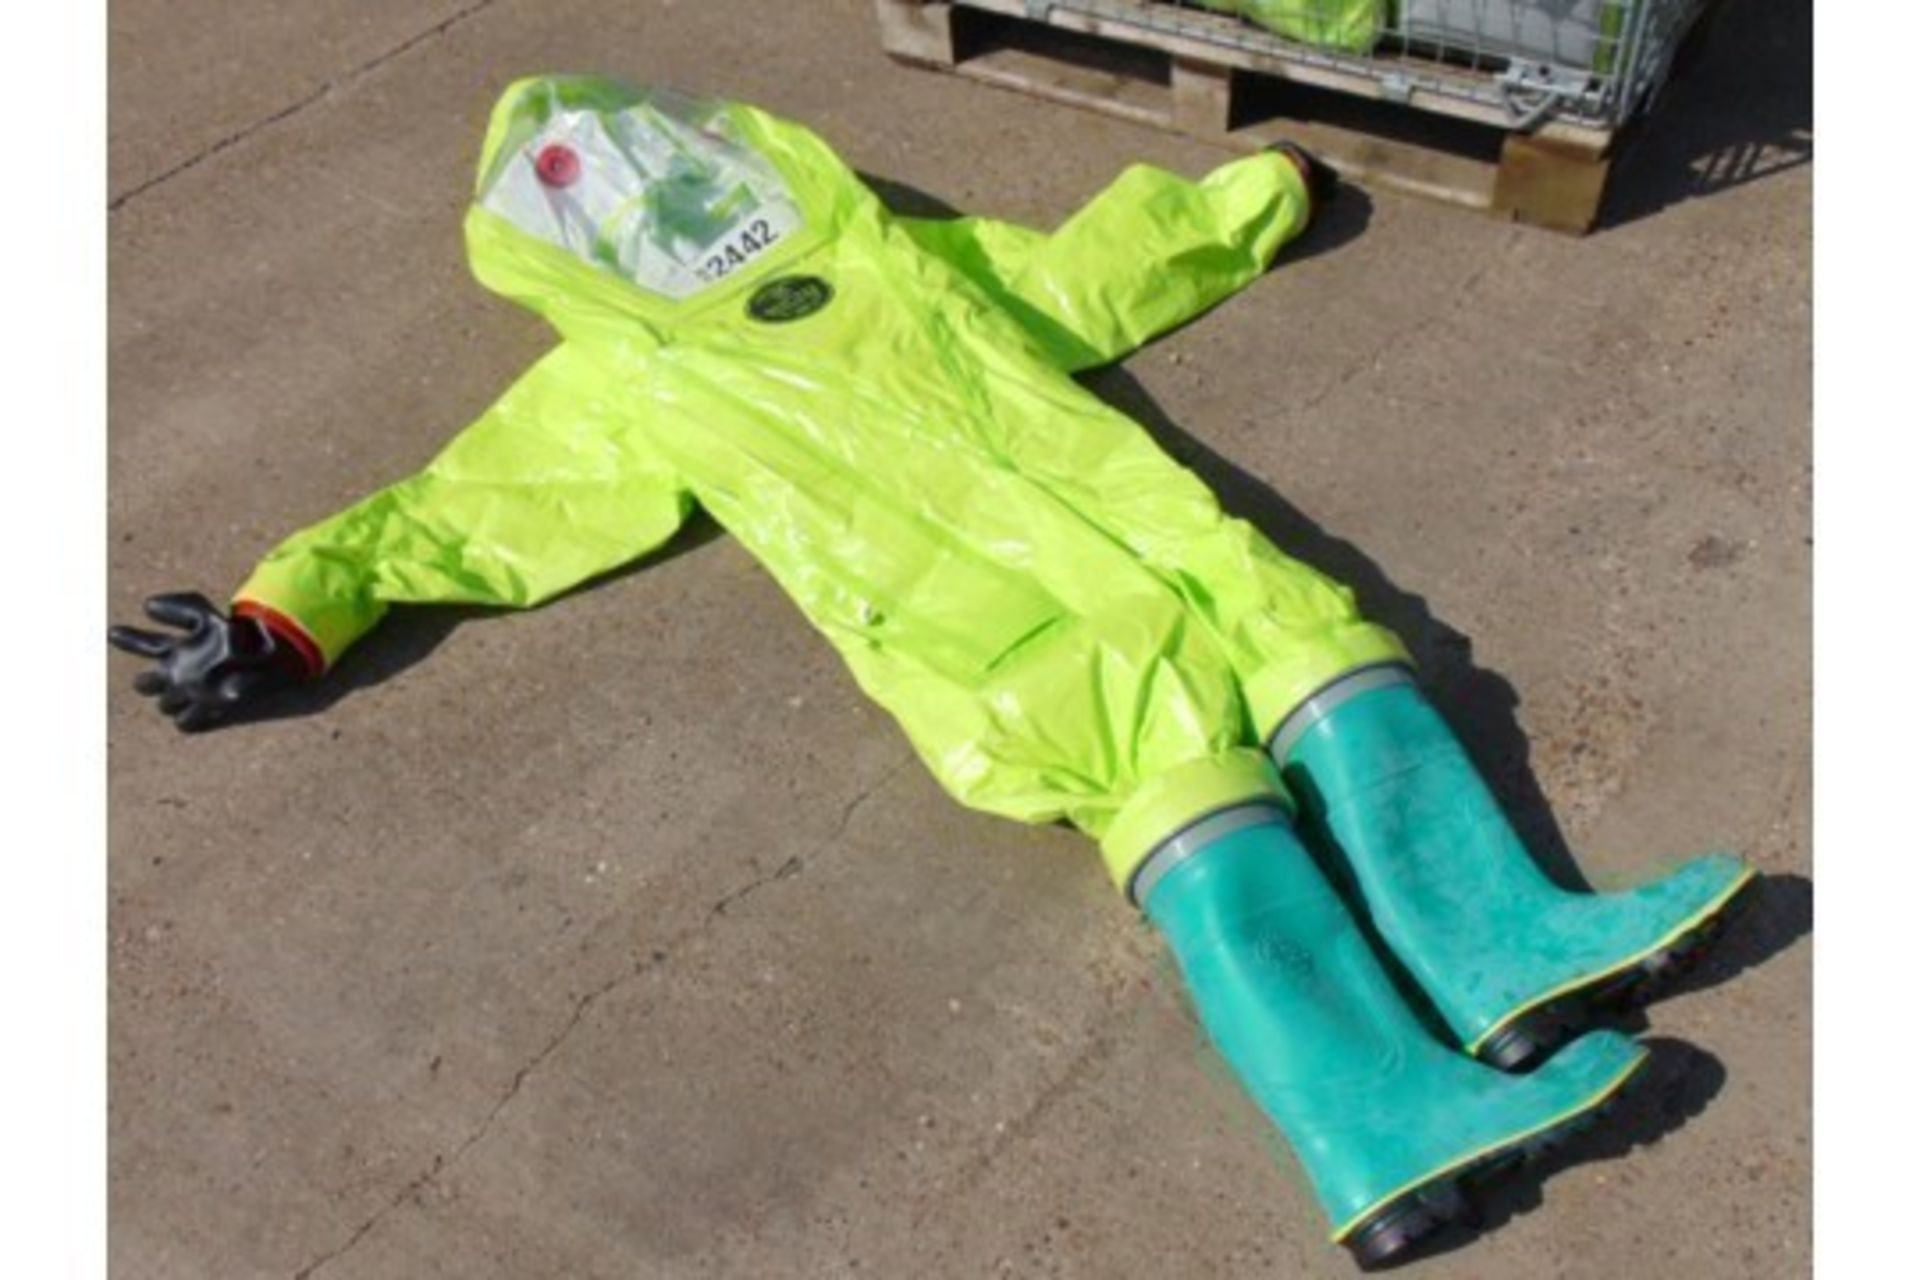 10 x Respirex Tychem TK Gas-Tight Hazmat Suit Type 1A with Attached Boots and Gloves - Image 4 of 10